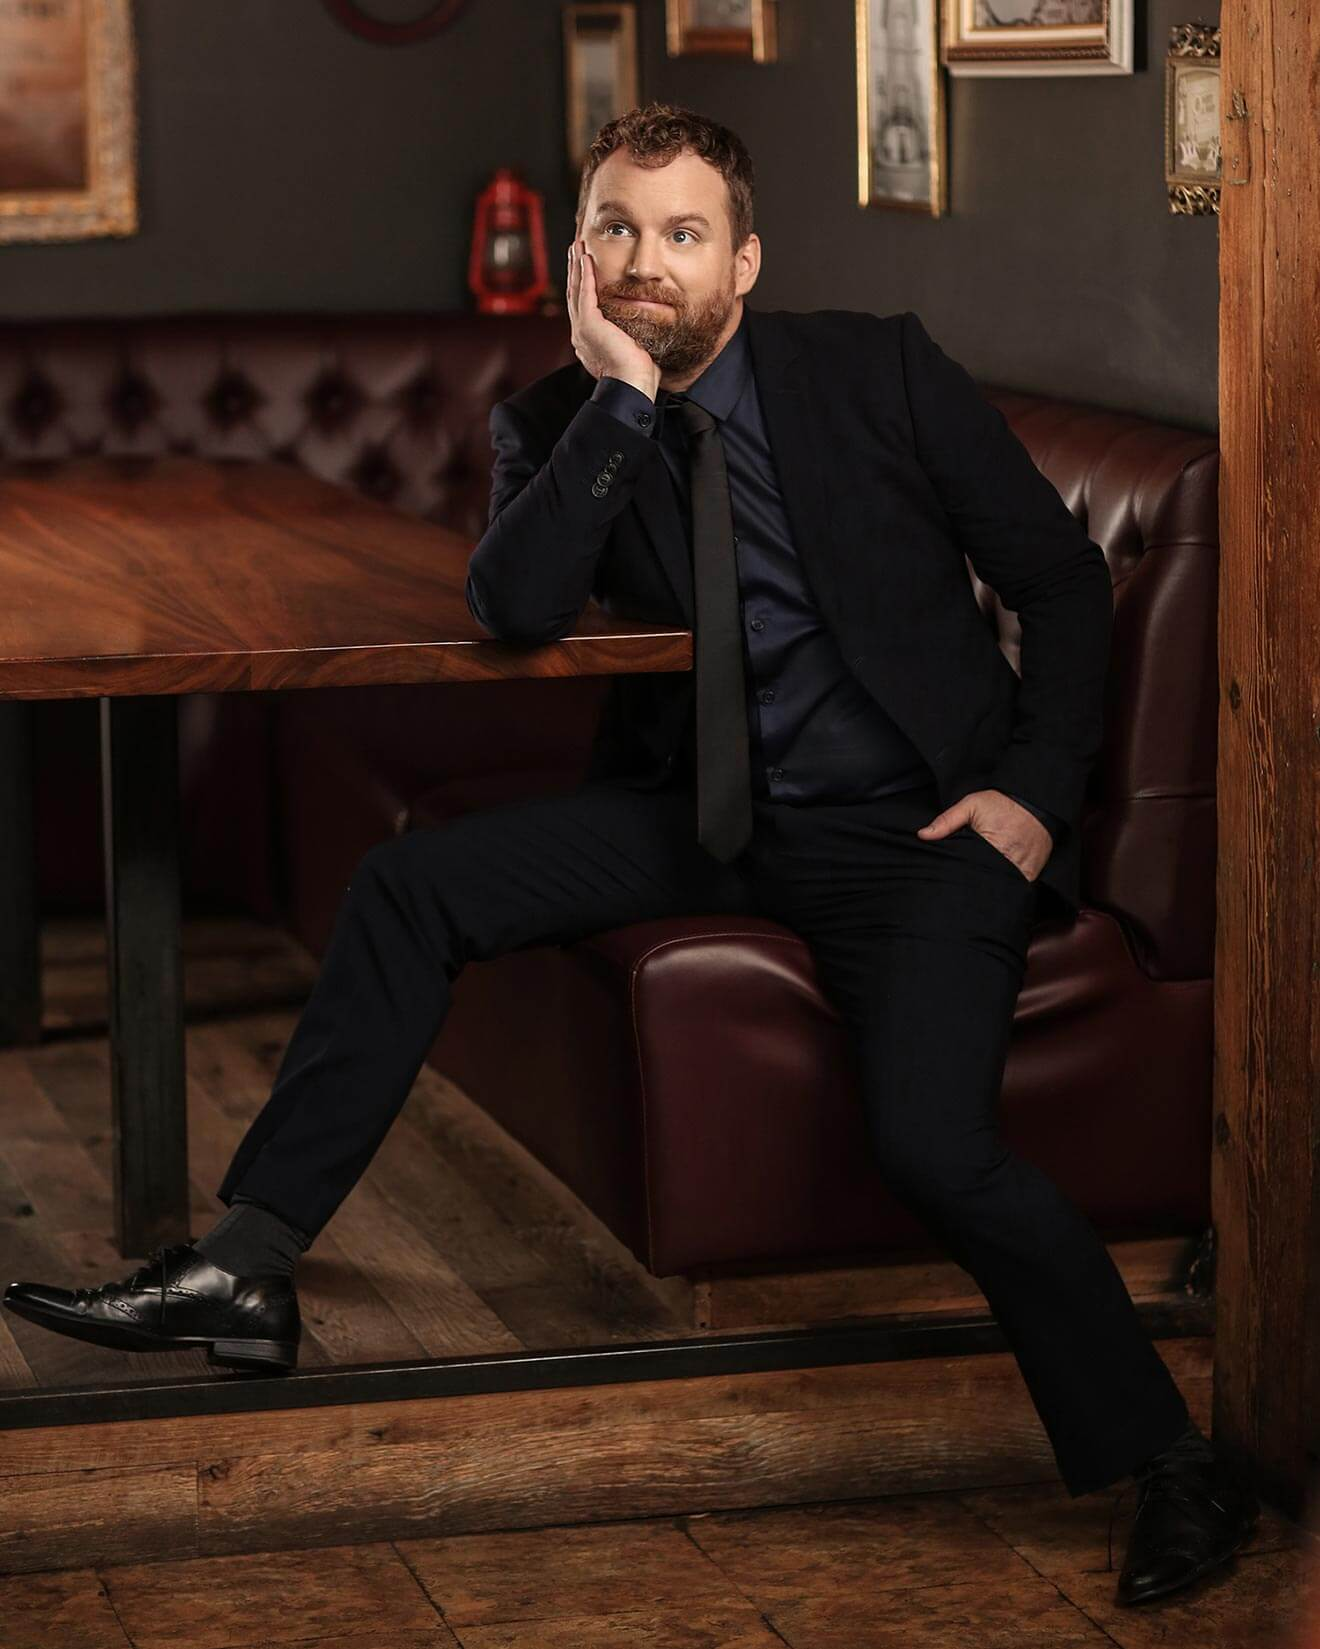 Chillin' with Patrick Gilmore, thoughtful pose